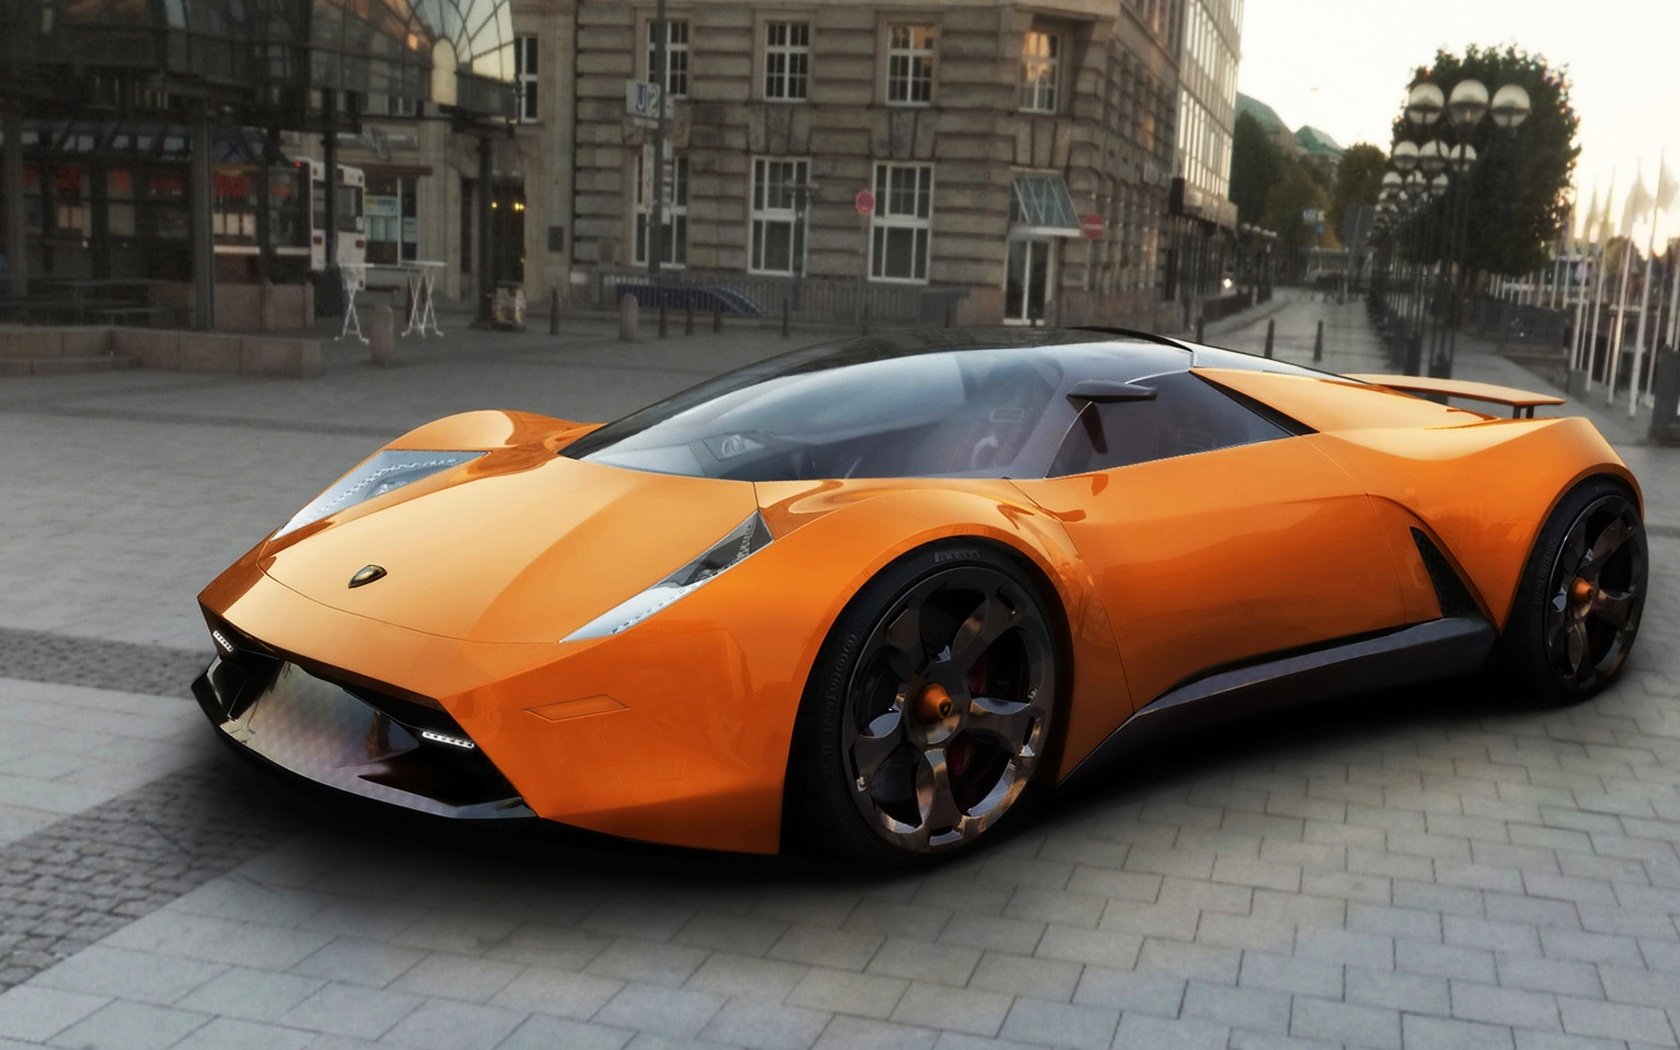 Lamborghini Insecta Concept Car Wallpapers HD Wallpapers 1680x1050